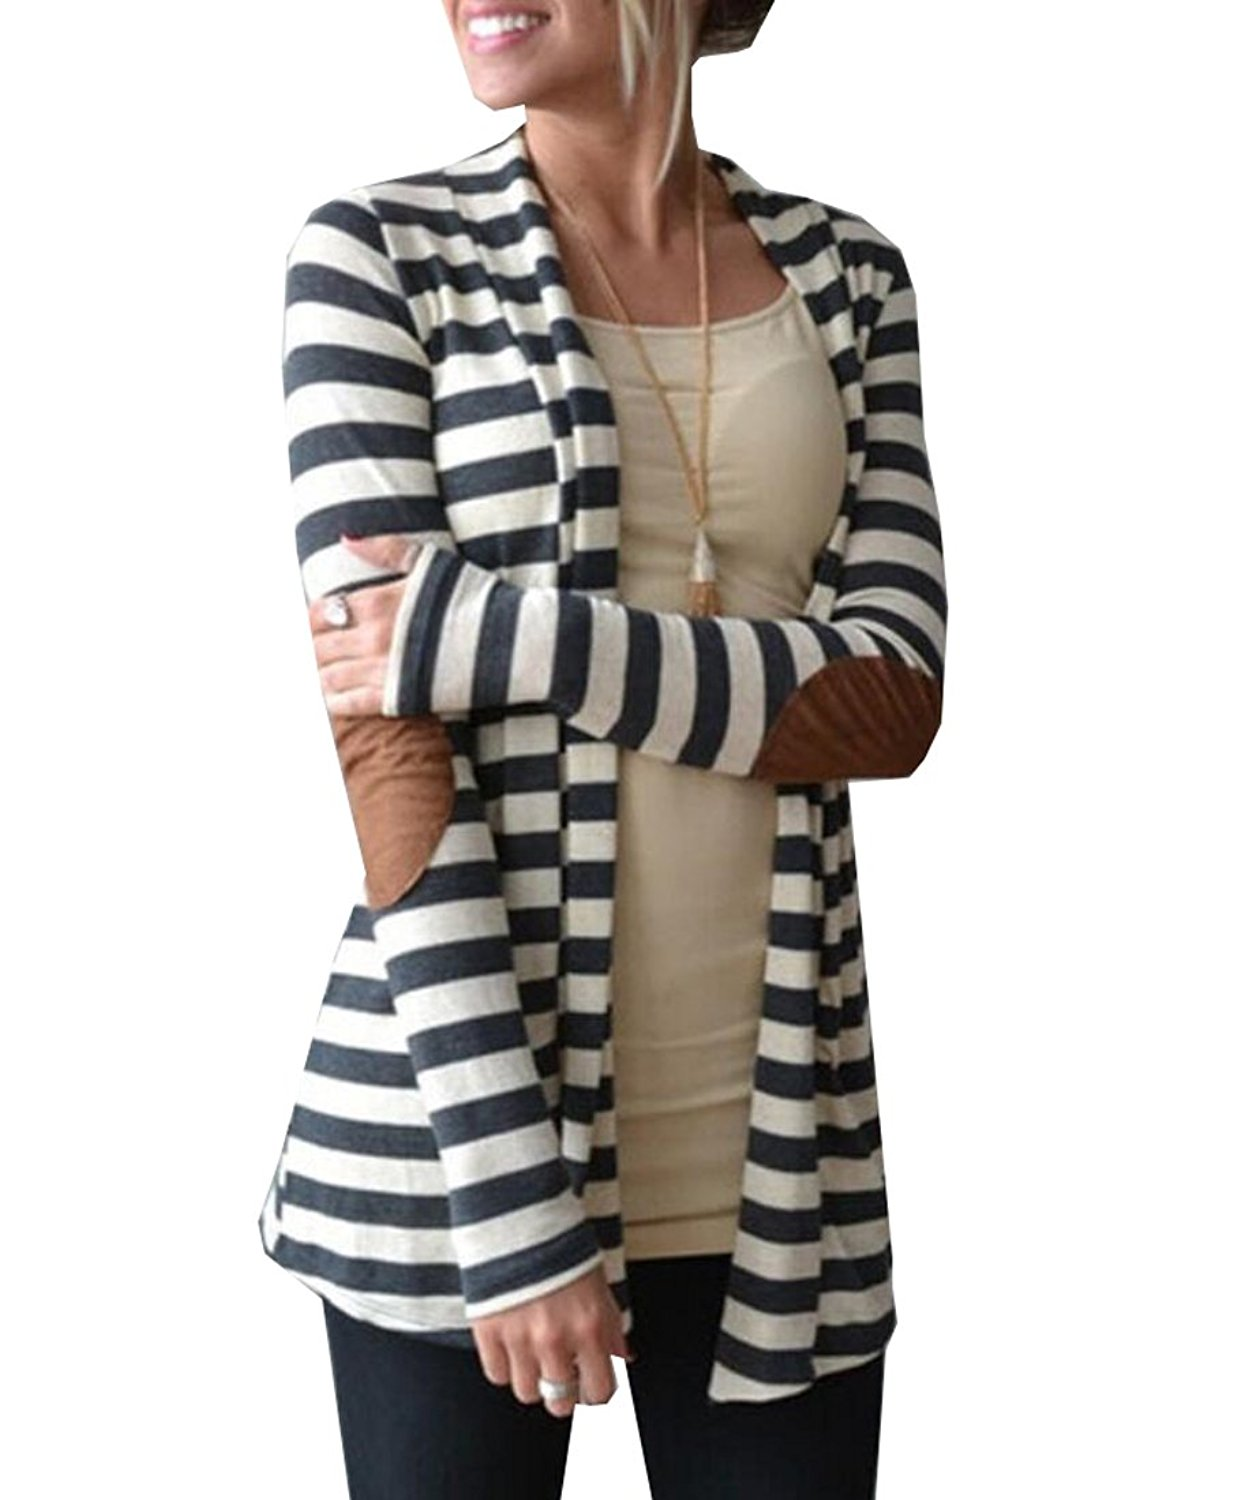 8e78a52de43 Get Quotations · ZAWAPEMIA Womens Cardigan Elbow Patch Shawl Collar Striped  Sweater